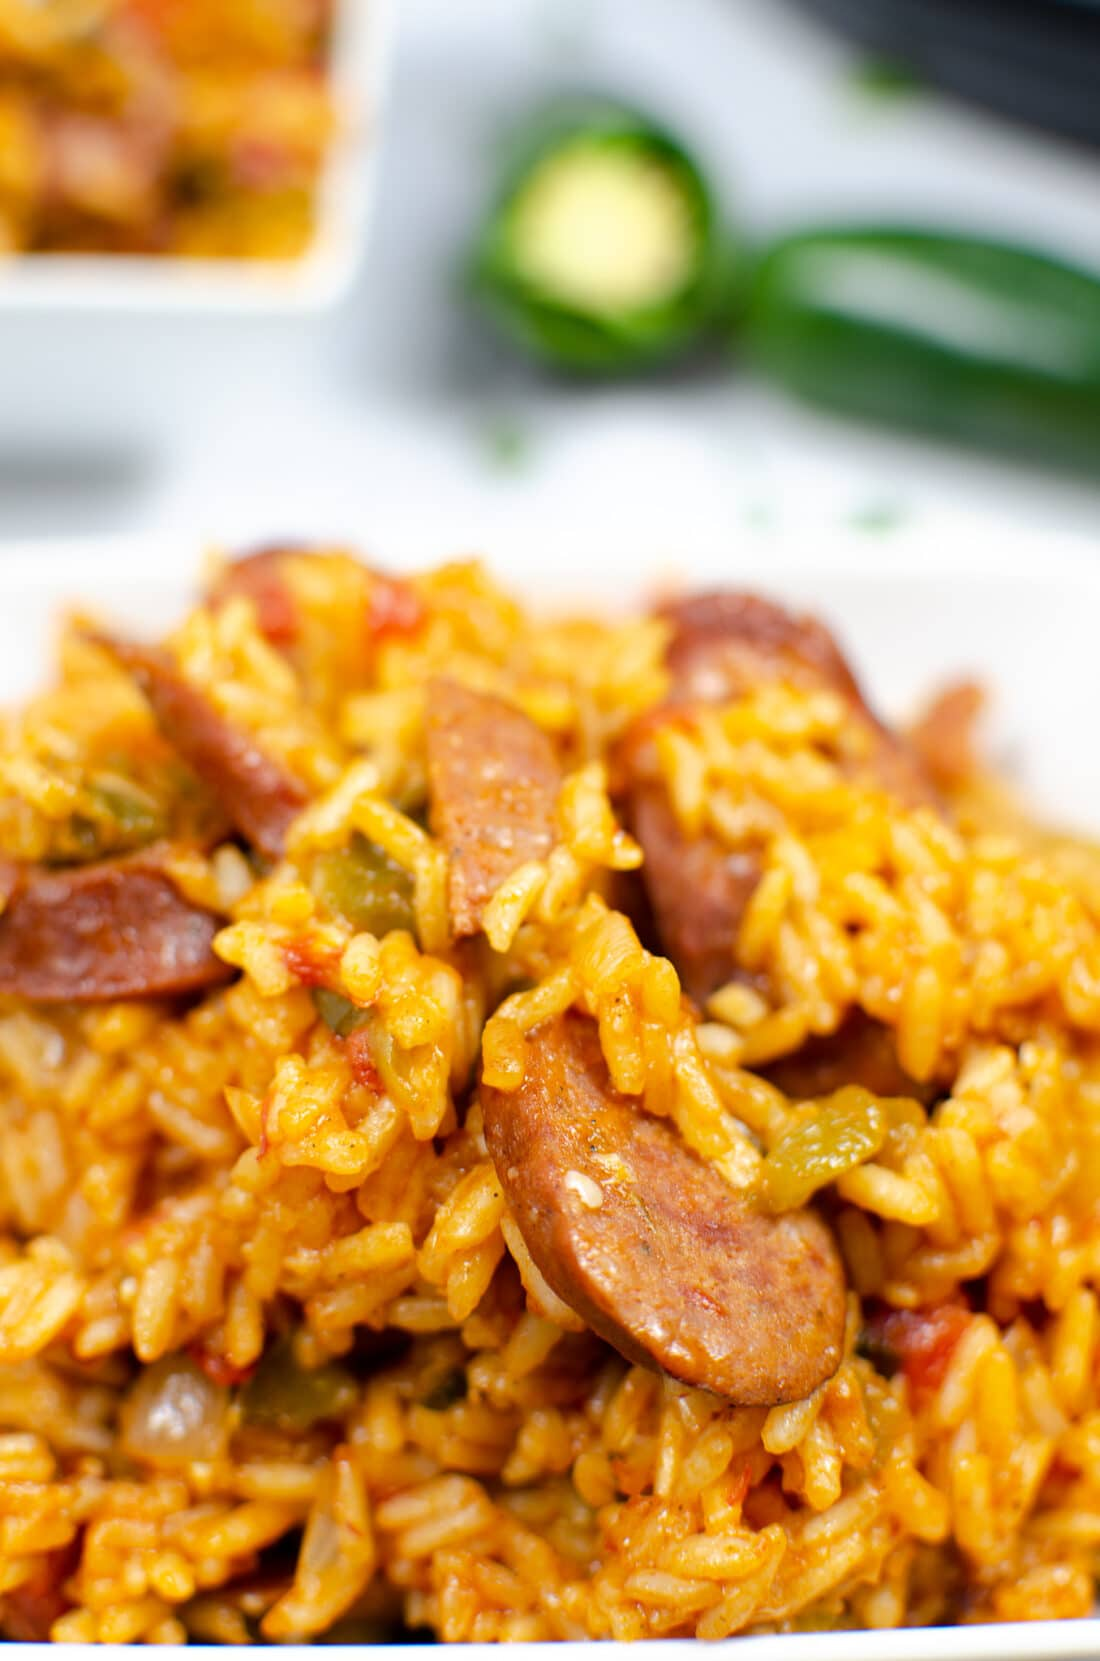 Closeup of Instant Pot Andouille Sausage Jambalaya. An authentic Instant Pot Andouille Sausage Jambalaya recipe that can be made in 30 minutes! This flavorful easy one-pan jambalaya recipe is made with andouille sausage, bell peppers, onion, celery, and spices. It's an instant family favorite recipe that is perfect for busy nights.